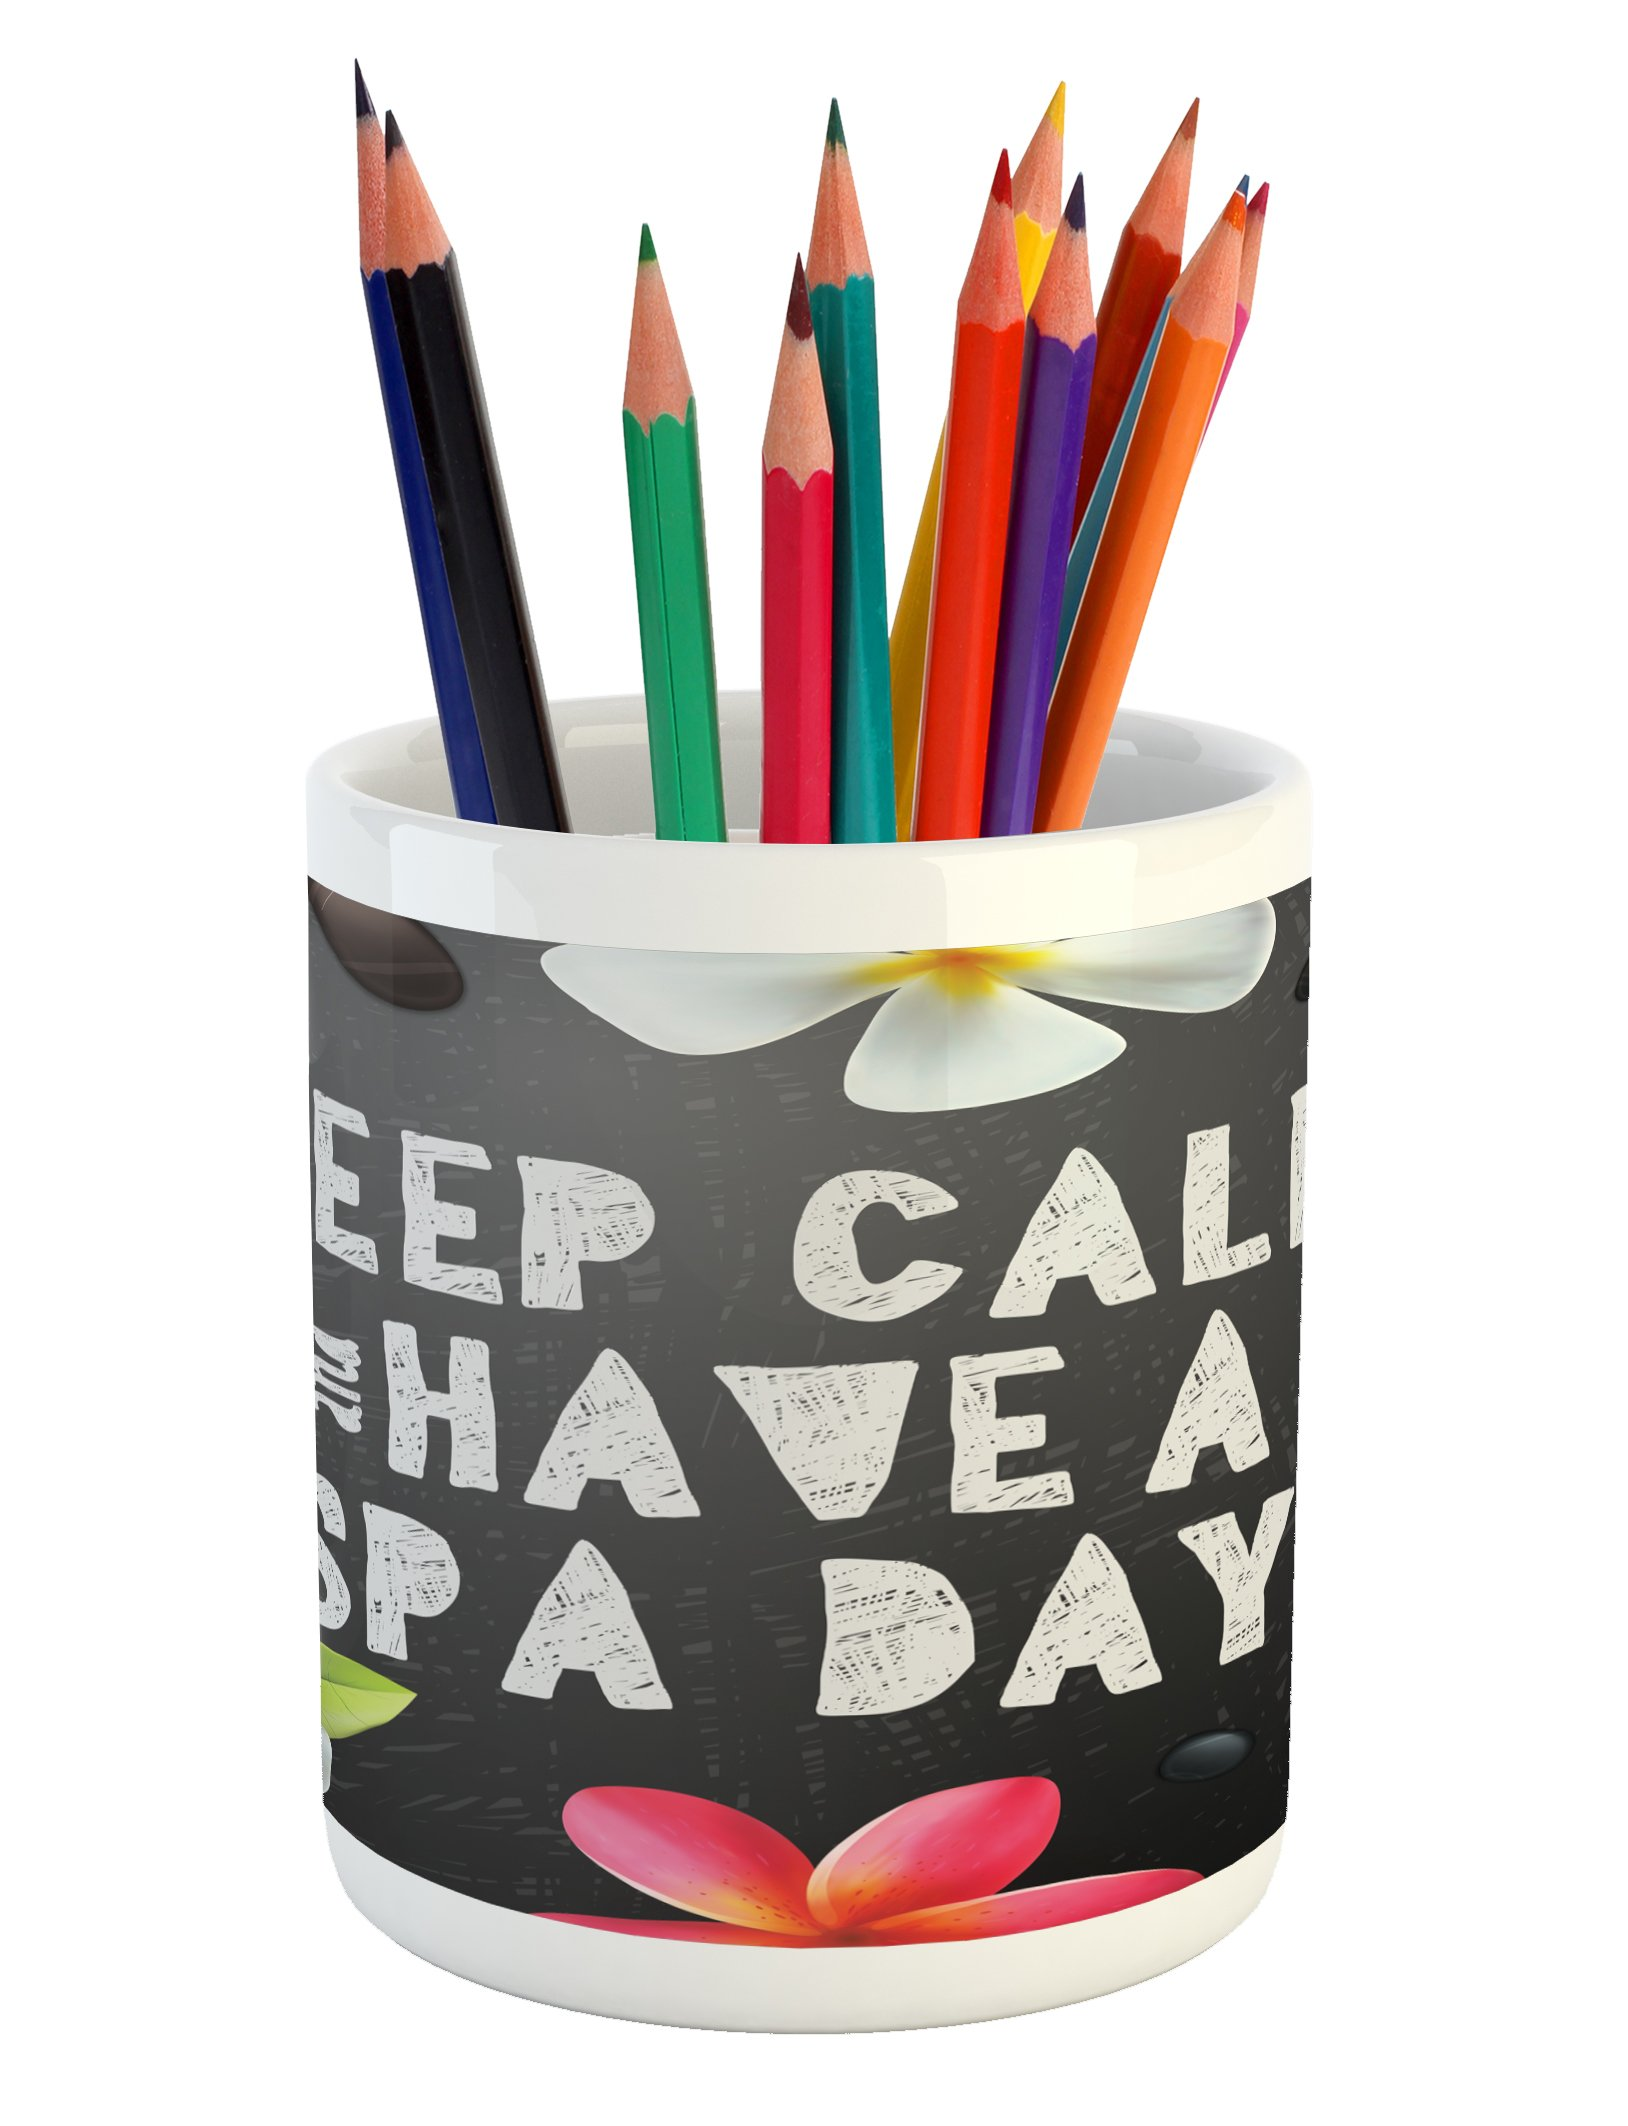 Ambesonne Zen Pencil Pen Holder, Keep Calm Have a Spa Day Quote Healthcare and Beauty Treatment Graphic Stones Flowers, Printed Ceramic Pencil Pen Holder for Desk Office Accessory, Multicolor